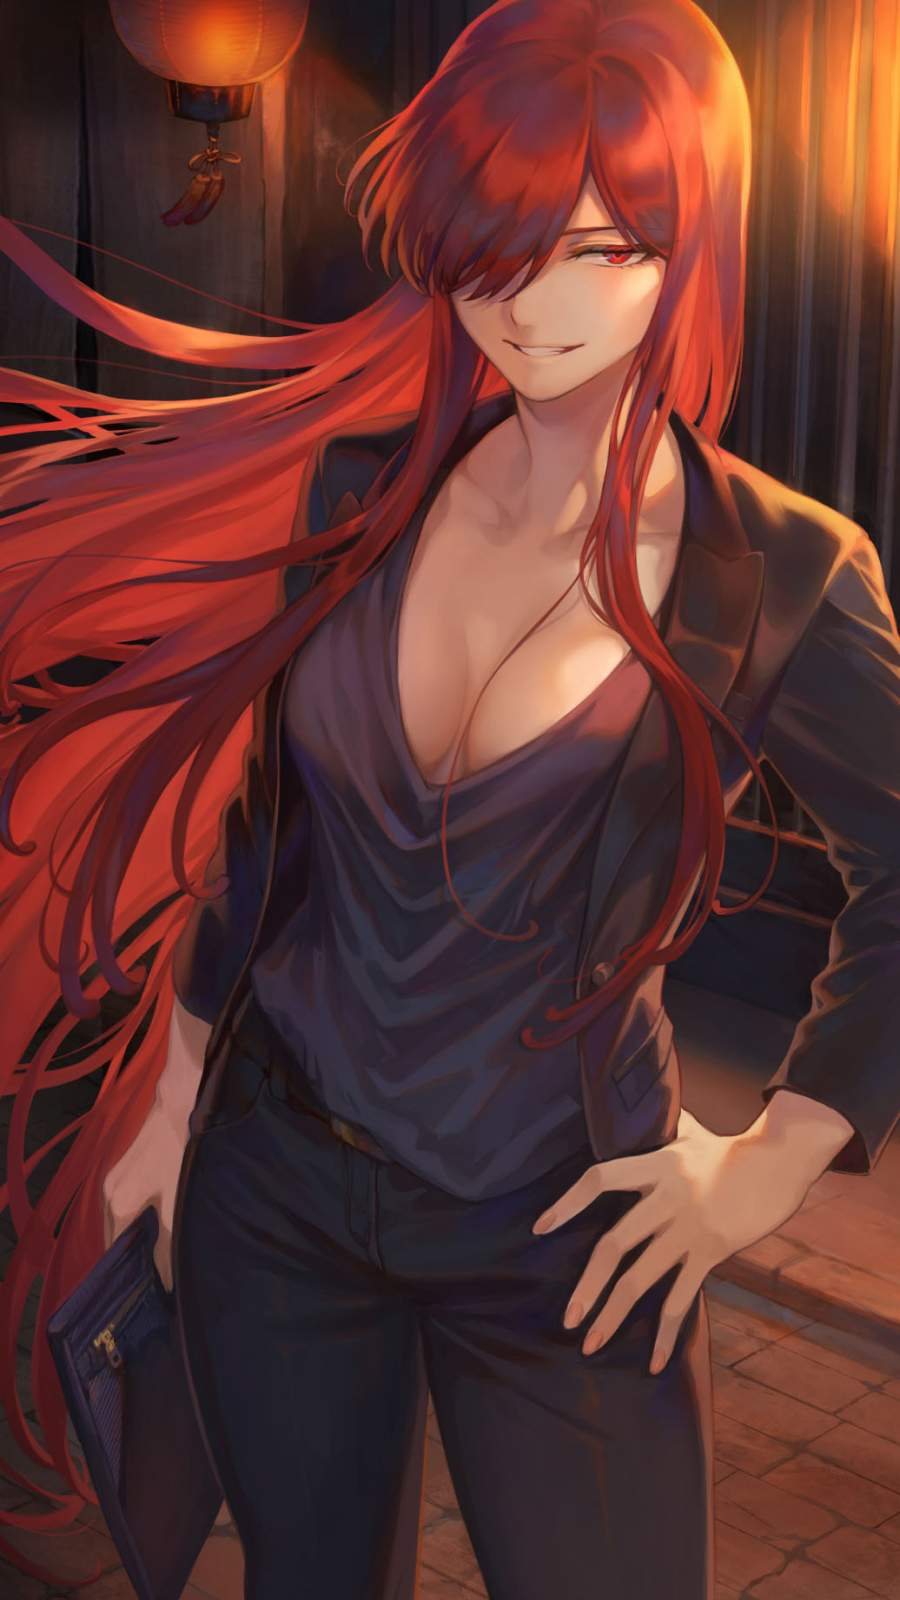 Redhead Anime iPhone Wallpaper